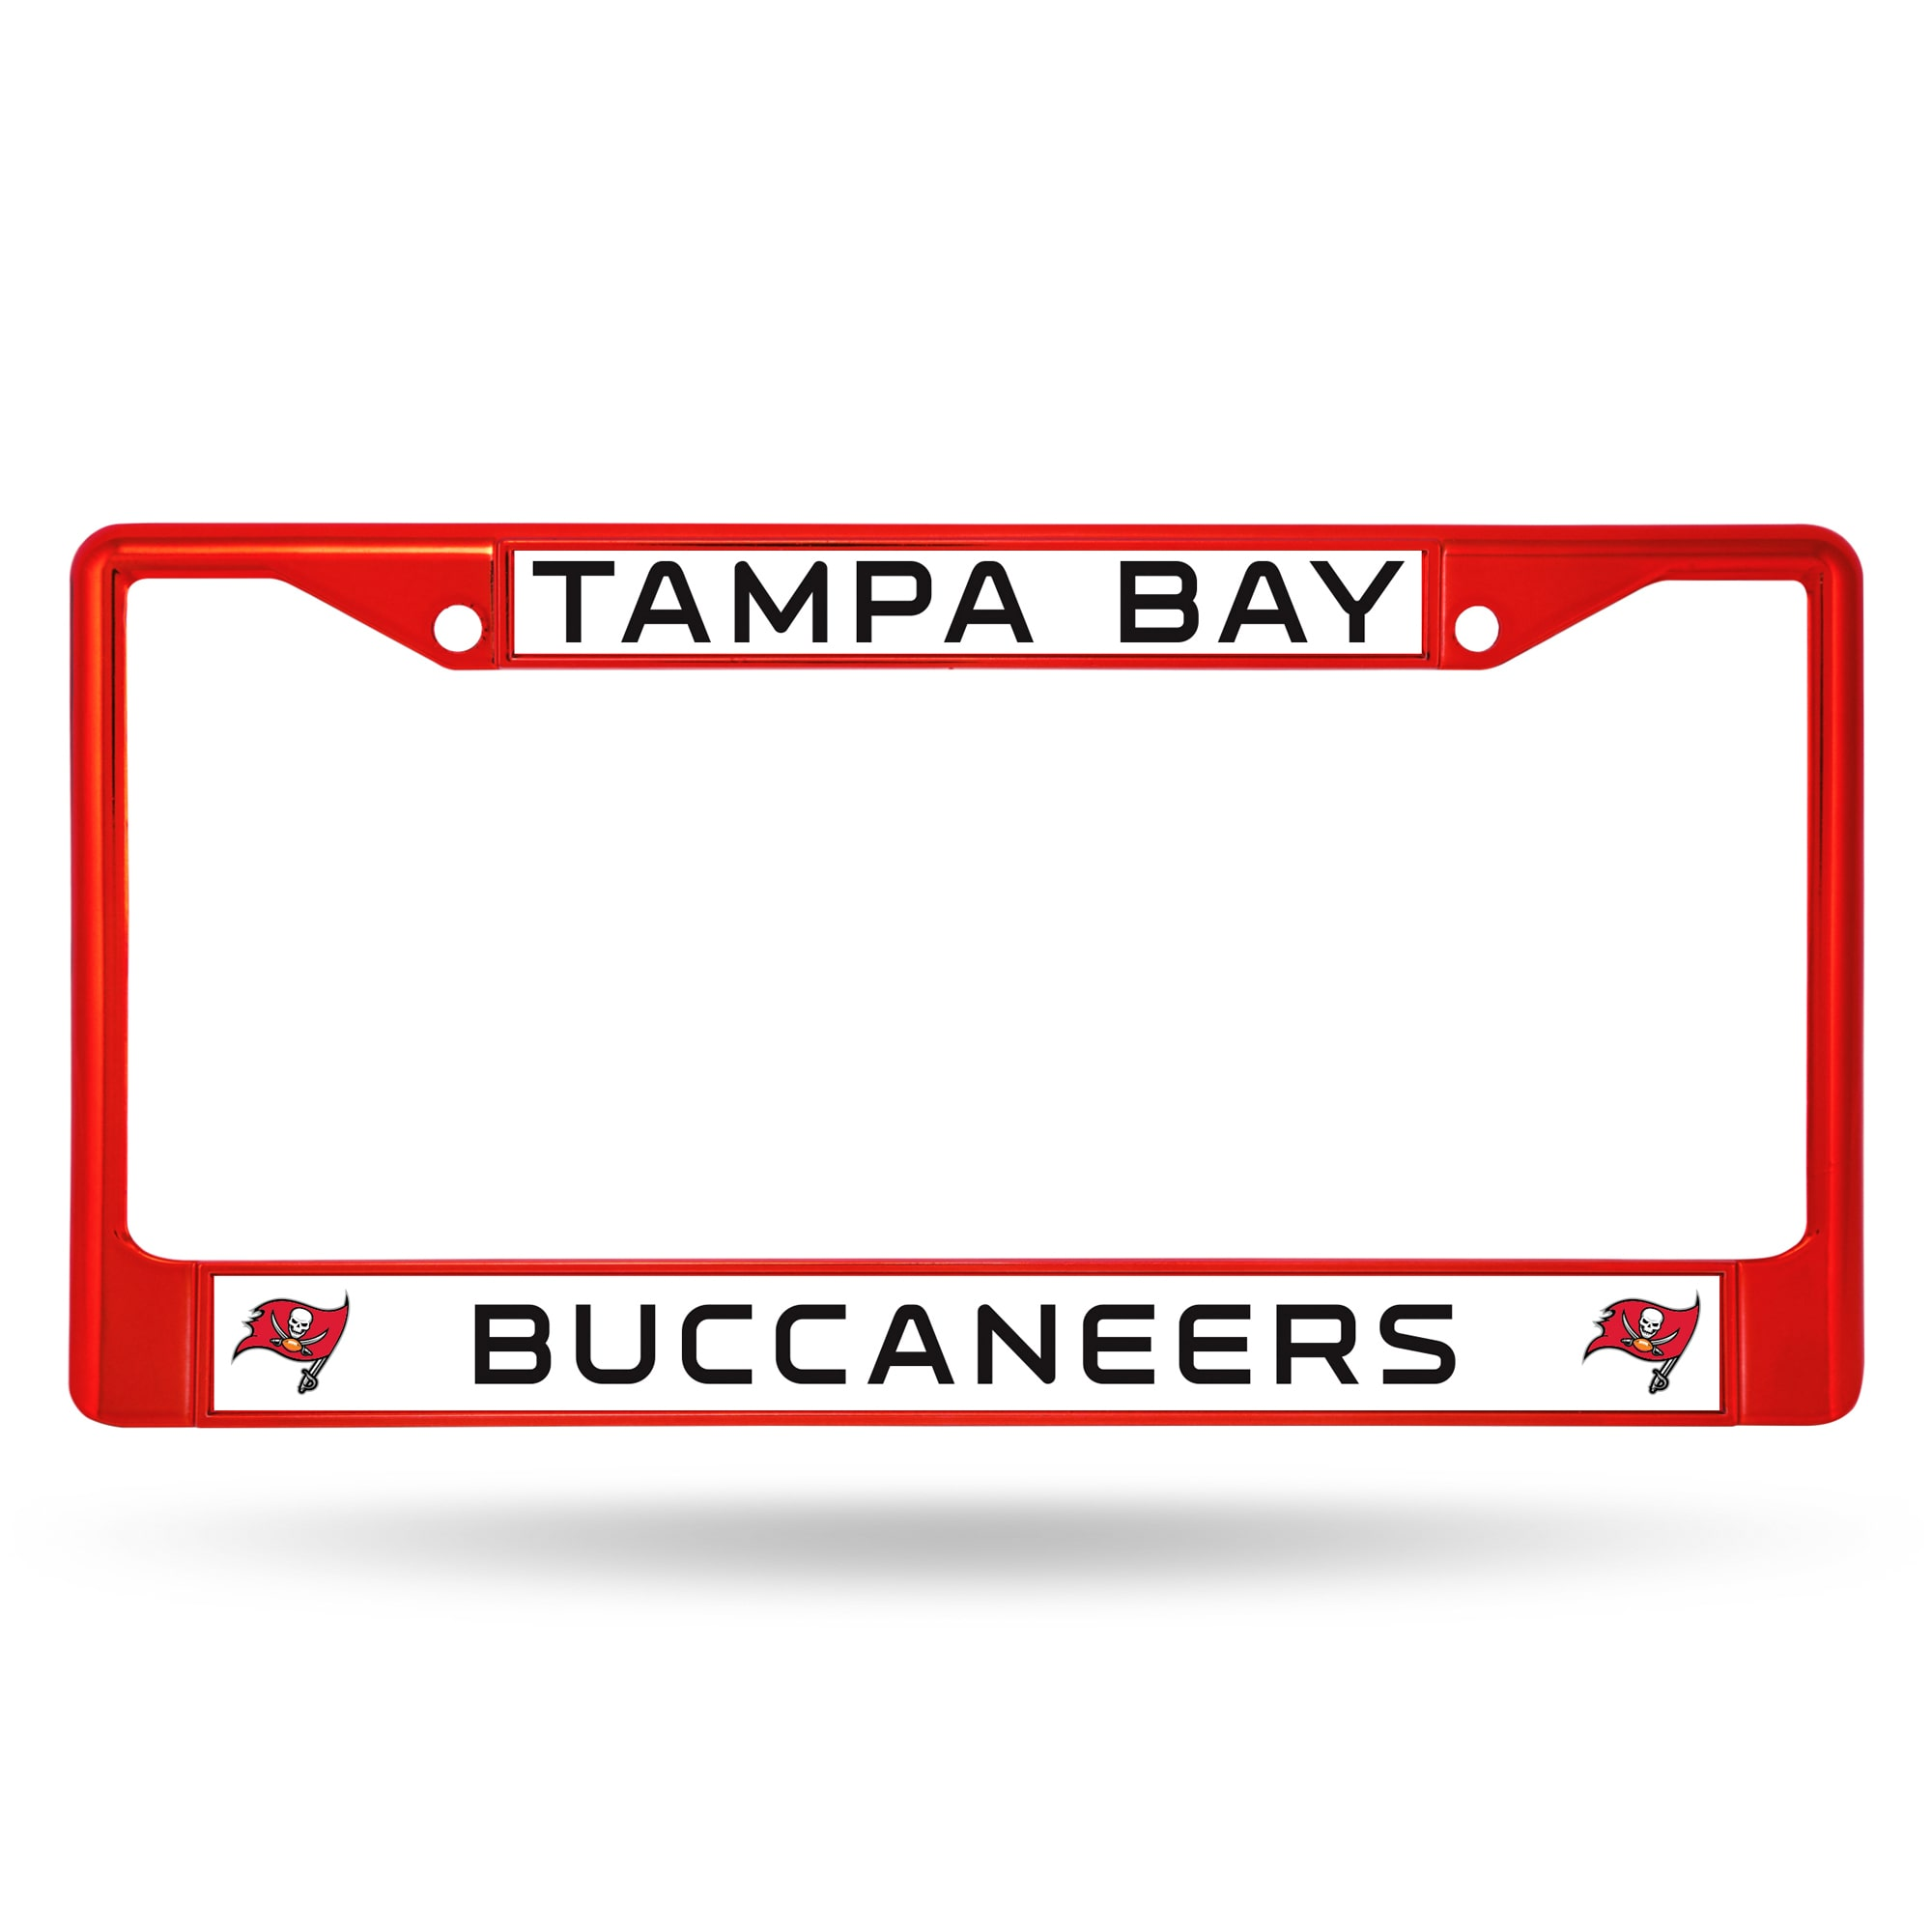 Tampa Bay Buccaneers NFL Licensed Red Painted Chrome Metal License Plate Frame